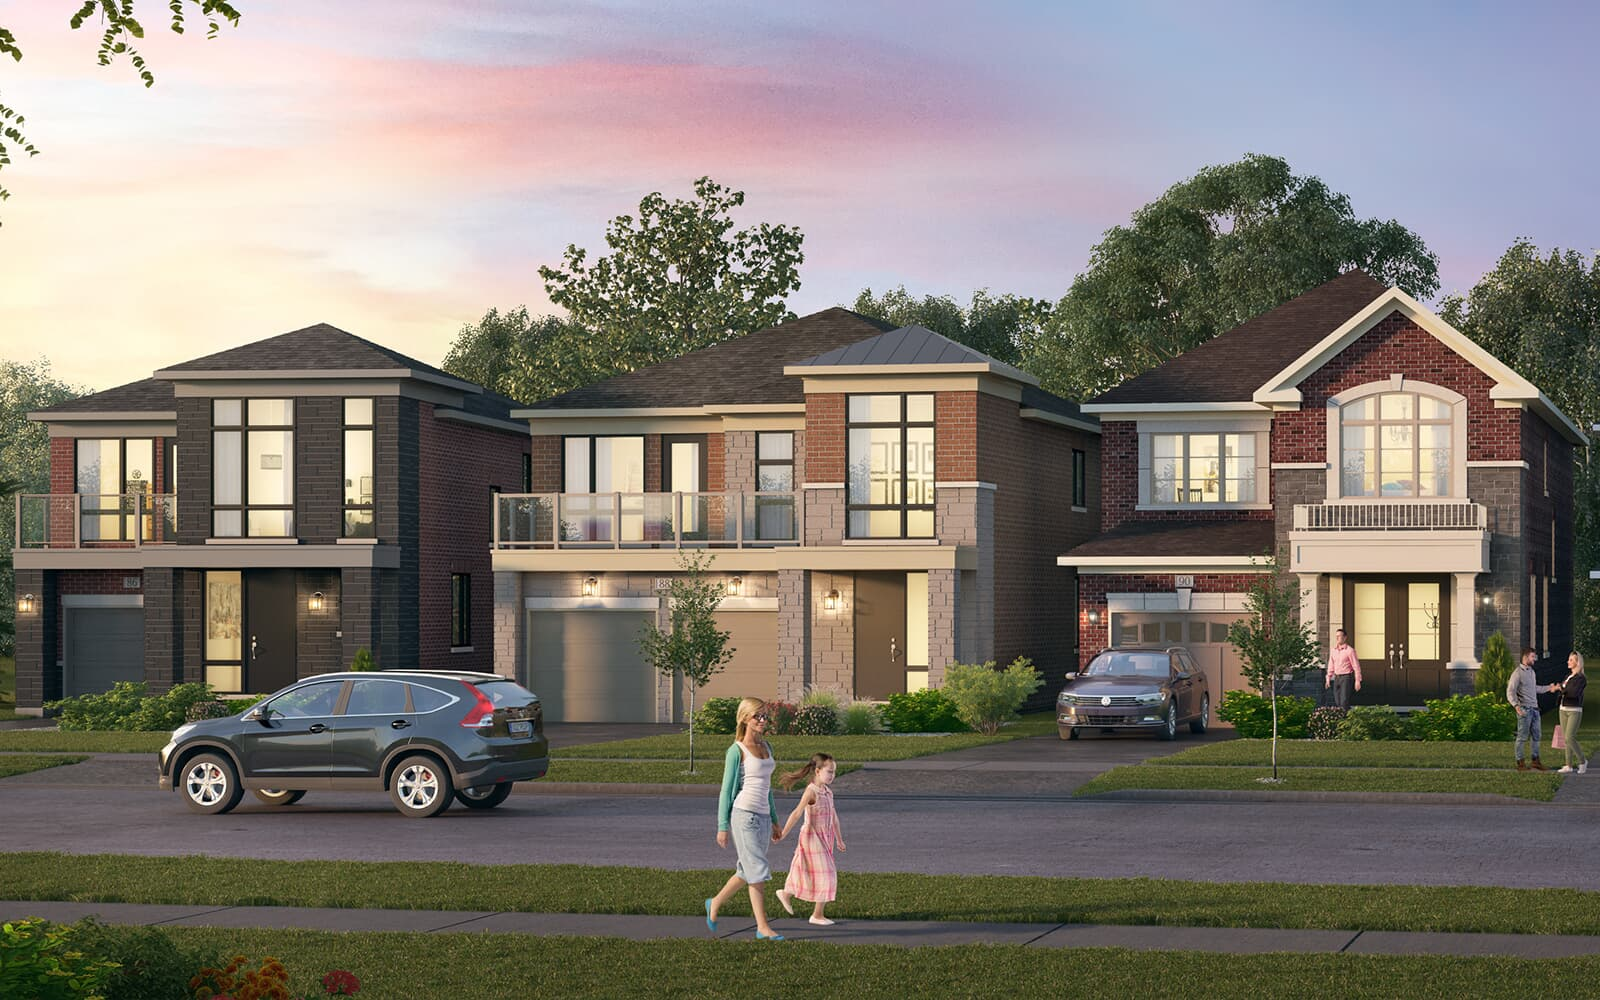 Streetscape Rendering at New Seaton in Pickering, ON